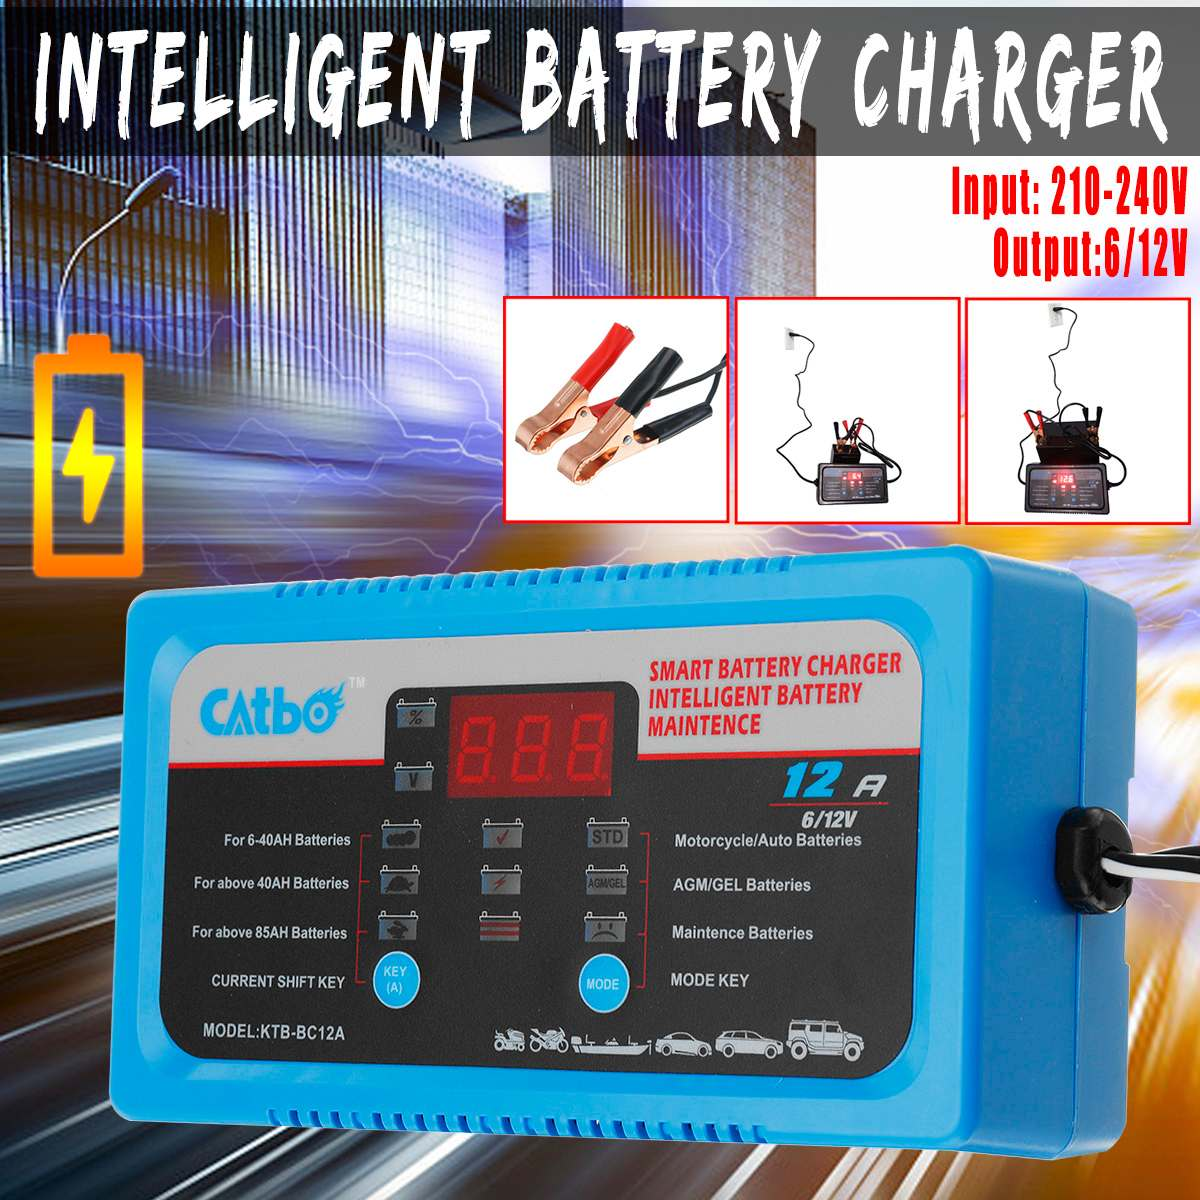 6V 12V EU/UK/AU Plug <font><b>Car</b></font> <font><b>Battery</b></font> <font><b>Charger</b></font> Full Automatic Intelligent <font><b>Trickle</b></font> Fast Van Charging 6V/12V Lead Acid <font><b>Battery</b></font> LCD image